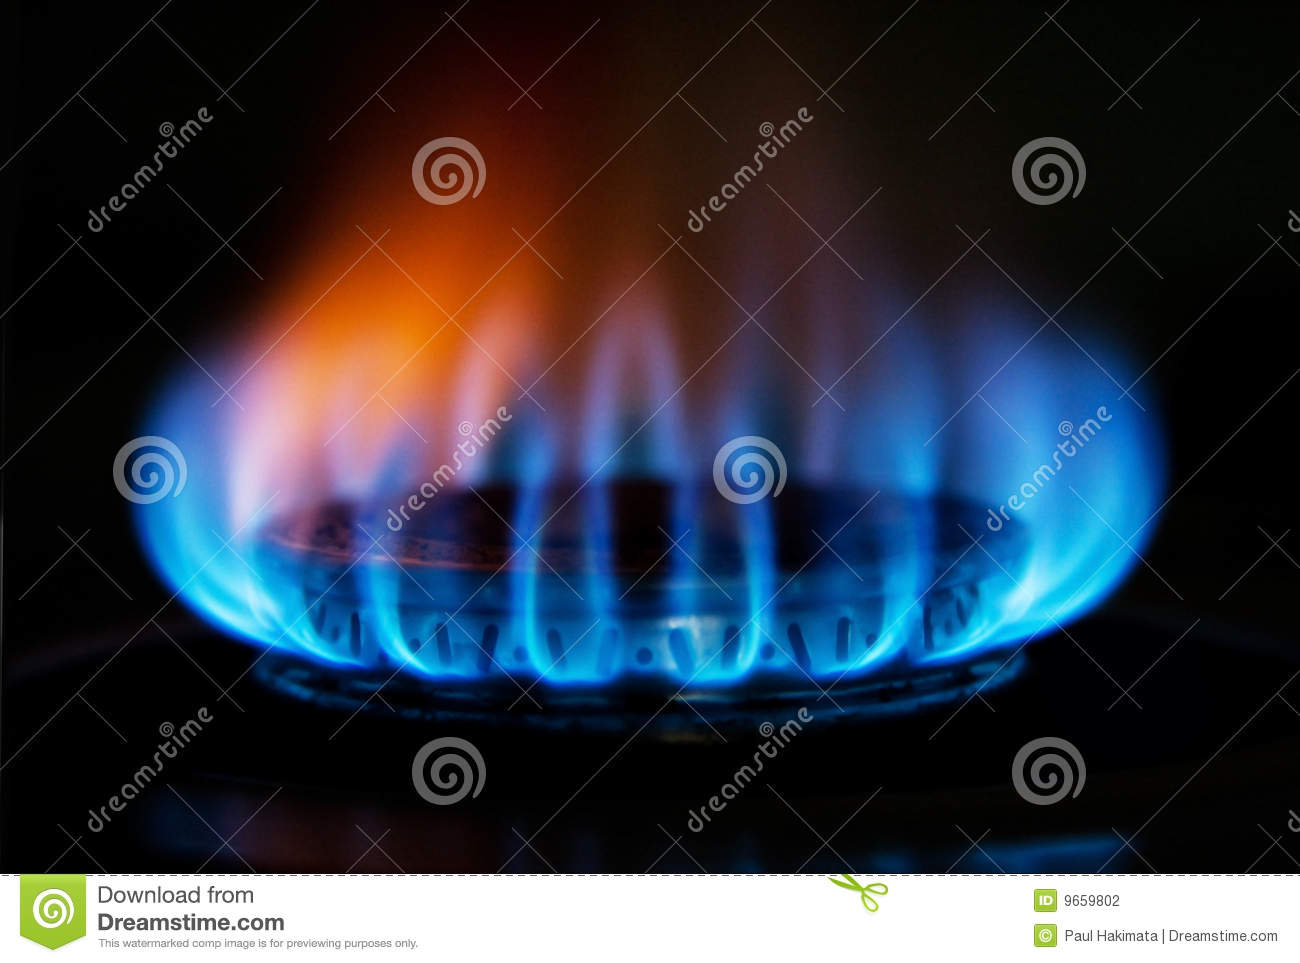 Cocinas Fuego Stove Gas Fire Flame Stock Photo Image Of Blue Heating